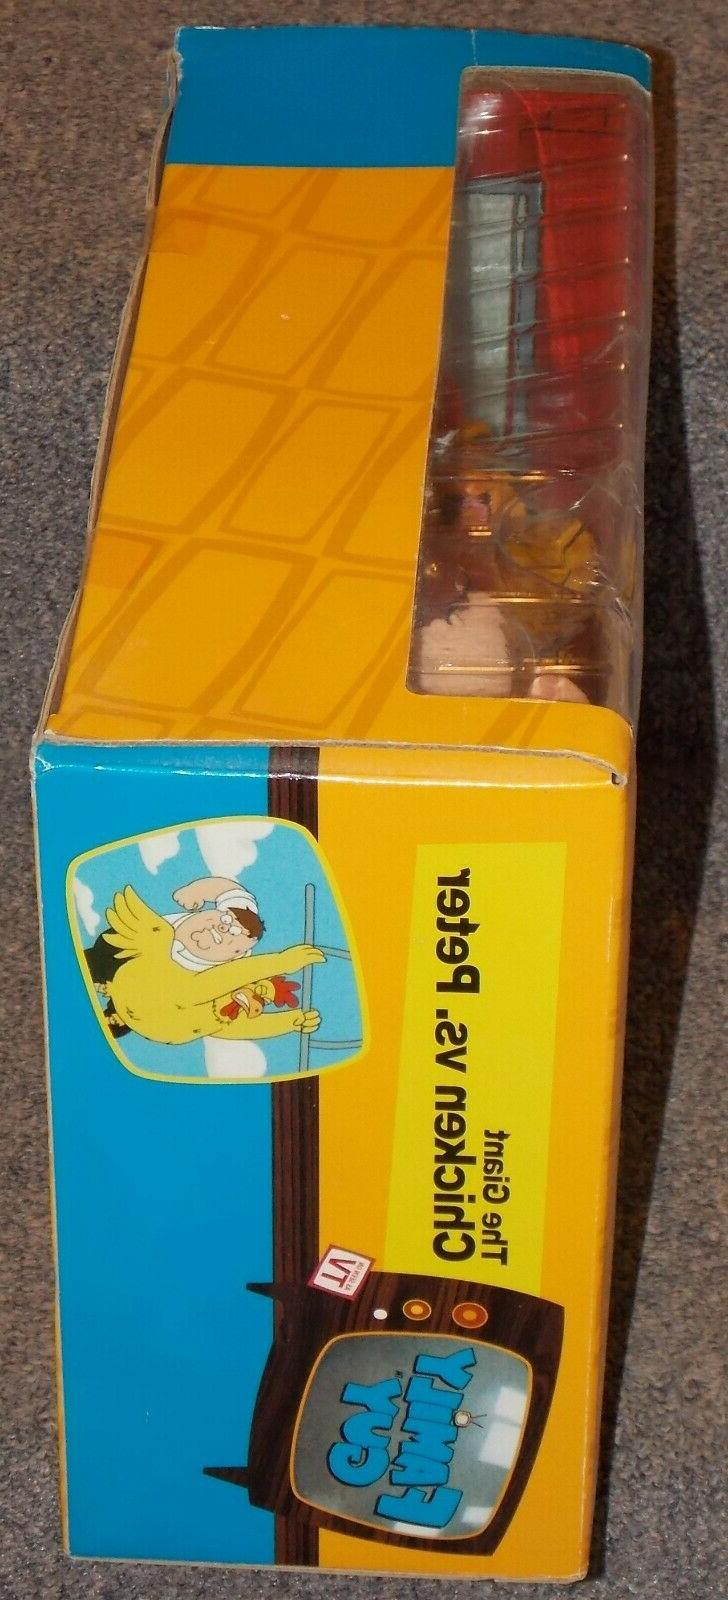 2005 MEZCO Giant Chicken Action Figure Set New In The